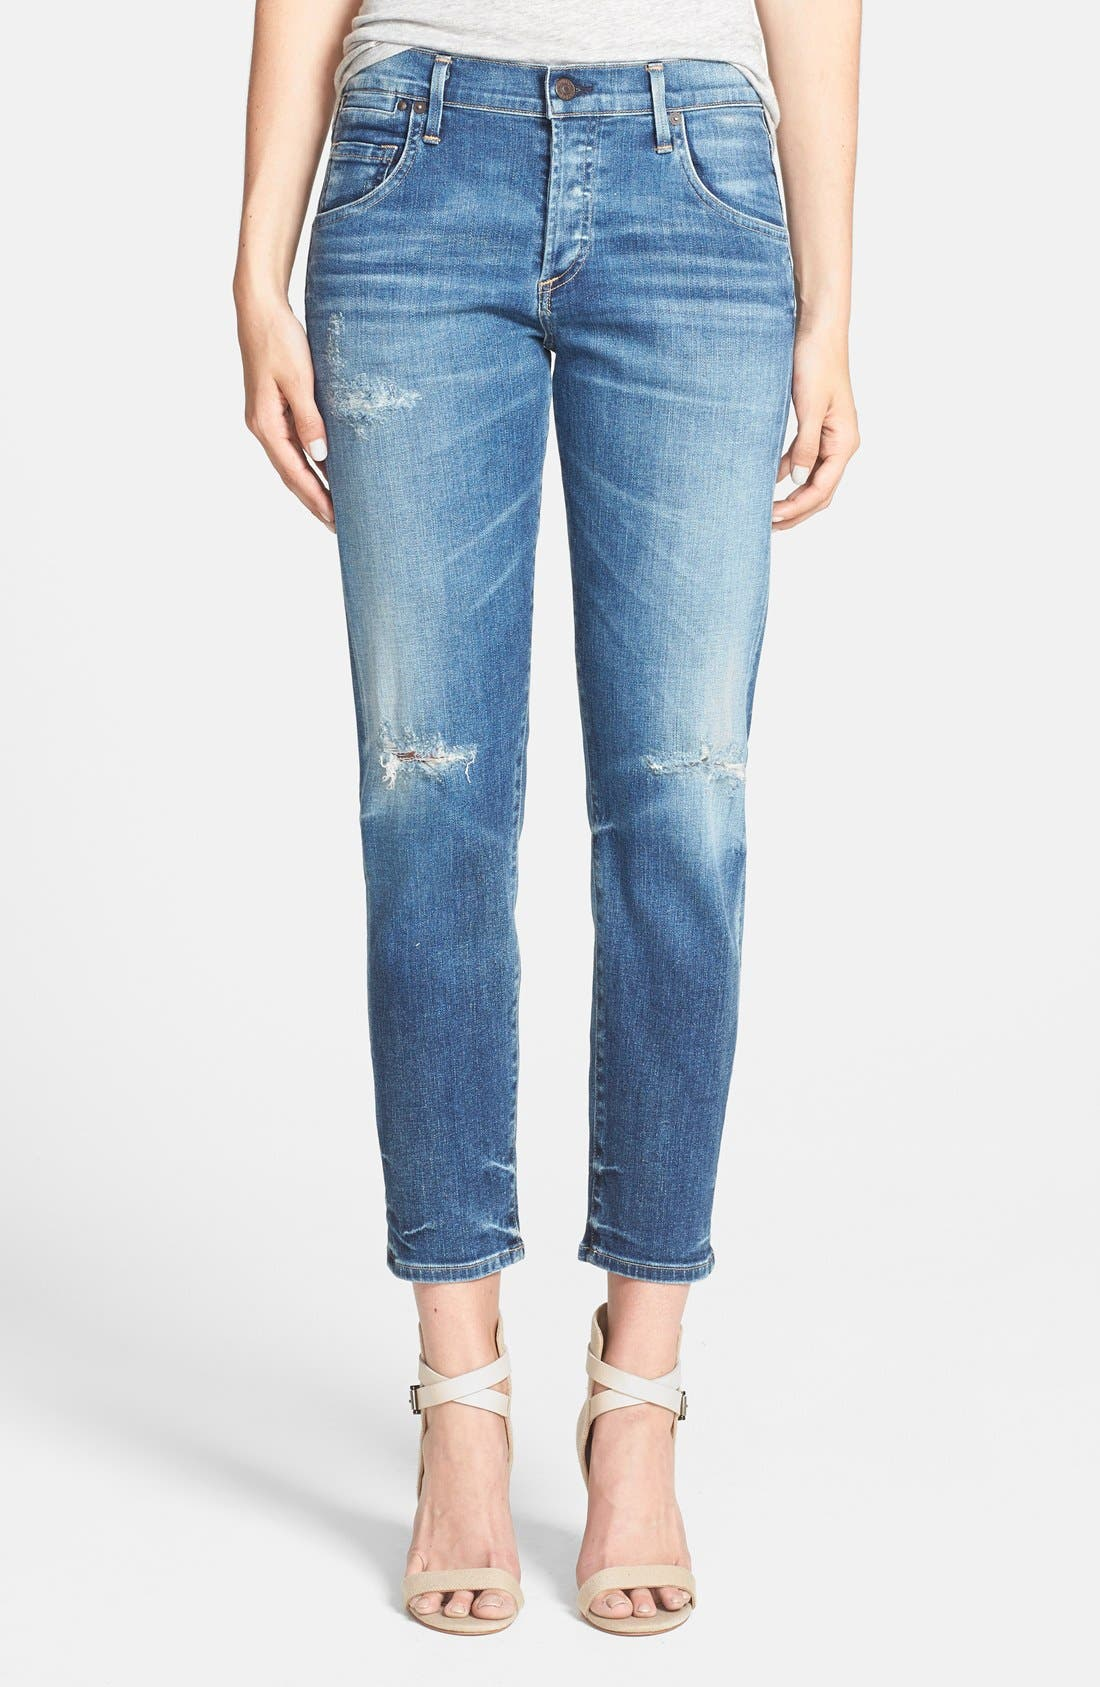 CITIZENS OF HUMANITY 'Emerson' Destroyed Slim Boyfriend Jeans, Main, color, 486